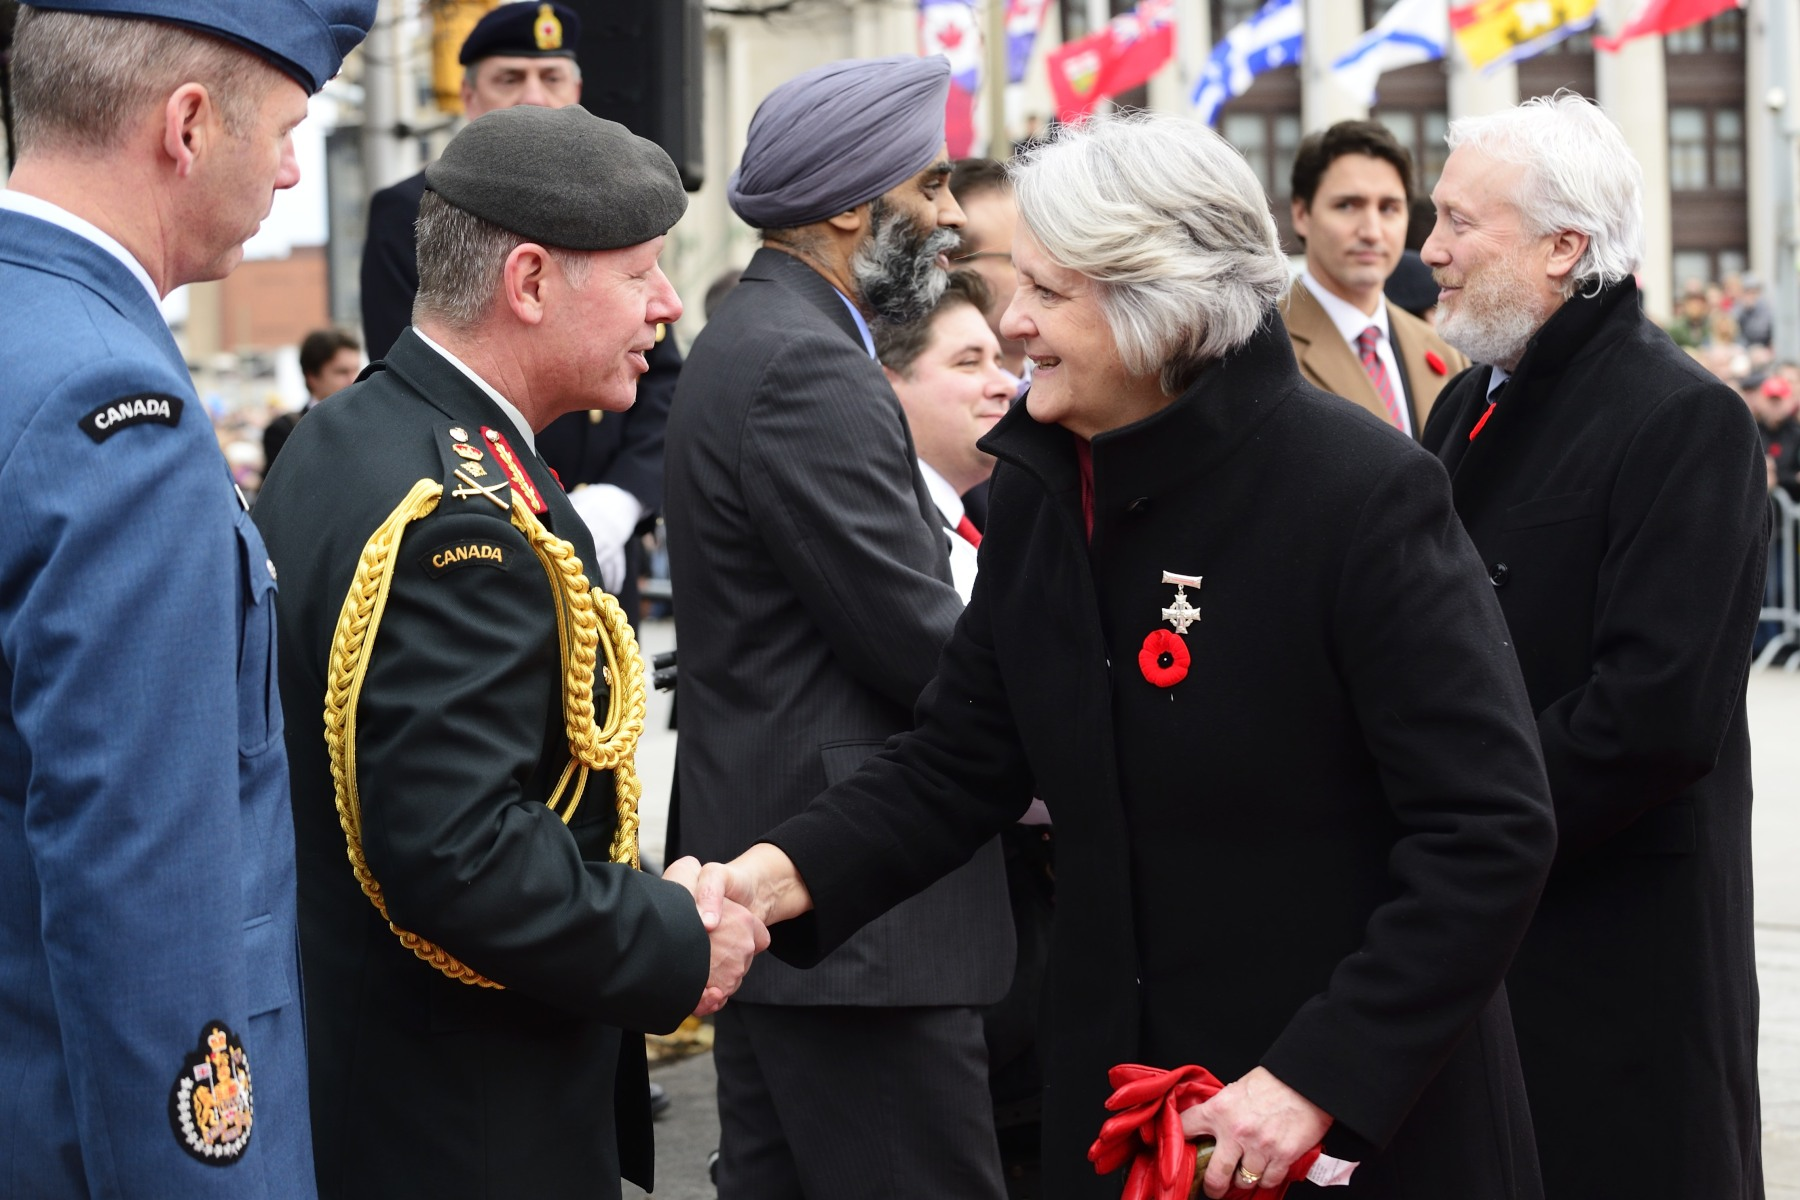 Upon her arrival at the National War Memorial, 2015 National Silver Cross Mother Mrs. Sheila Elizabeth Anderson was greeted by the Chief of the Defence Staff General Jonathan Vance. Her son Corporal Jordan James Anderson was killed by an improvised explosive device, on July 4, 2007, in Afghanistan.